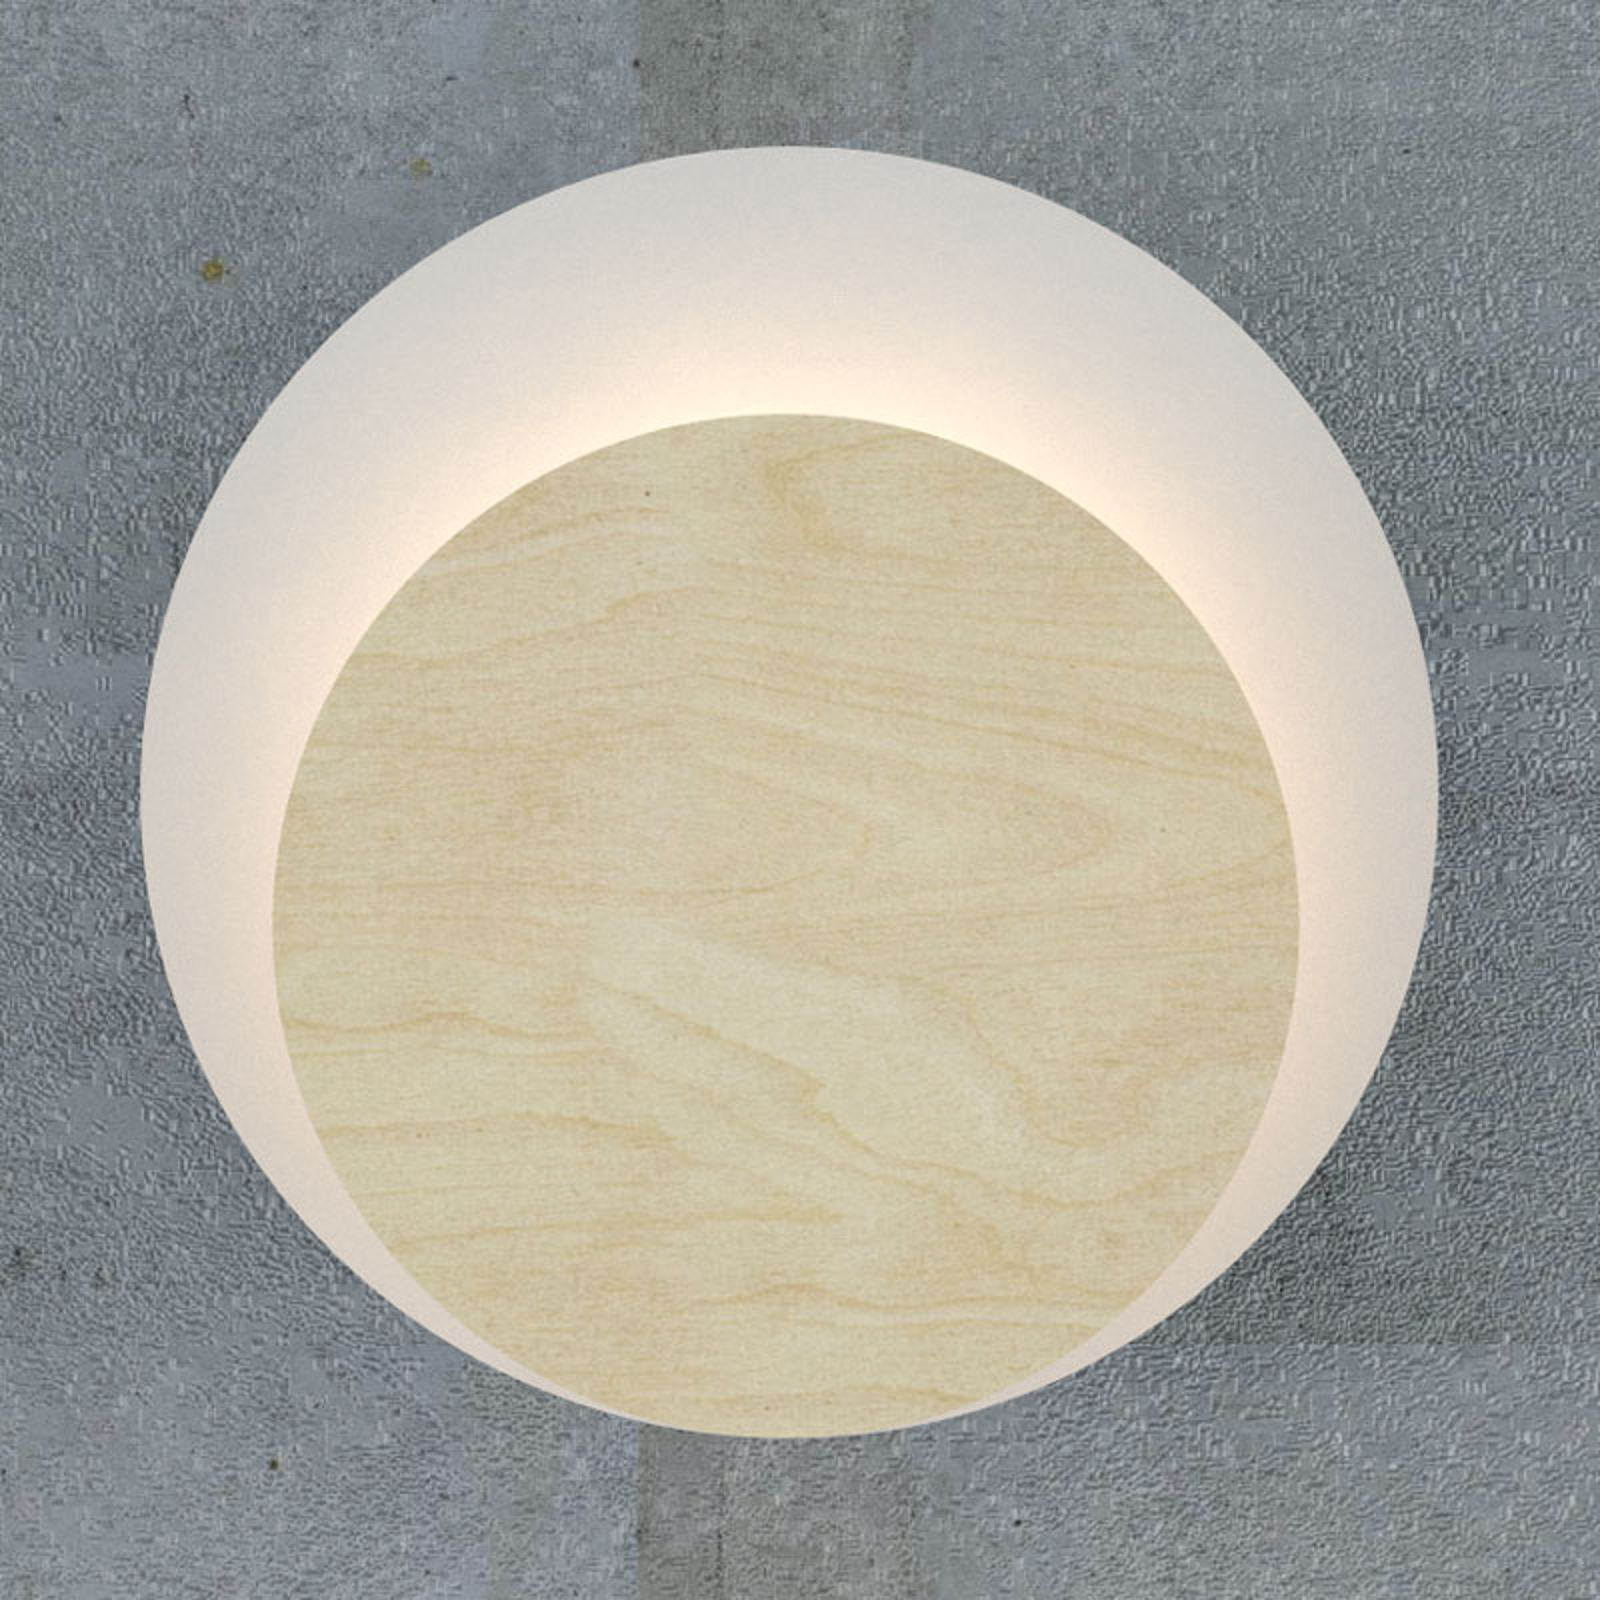 Wandlamp Circle in wit, decorplaat hout licht